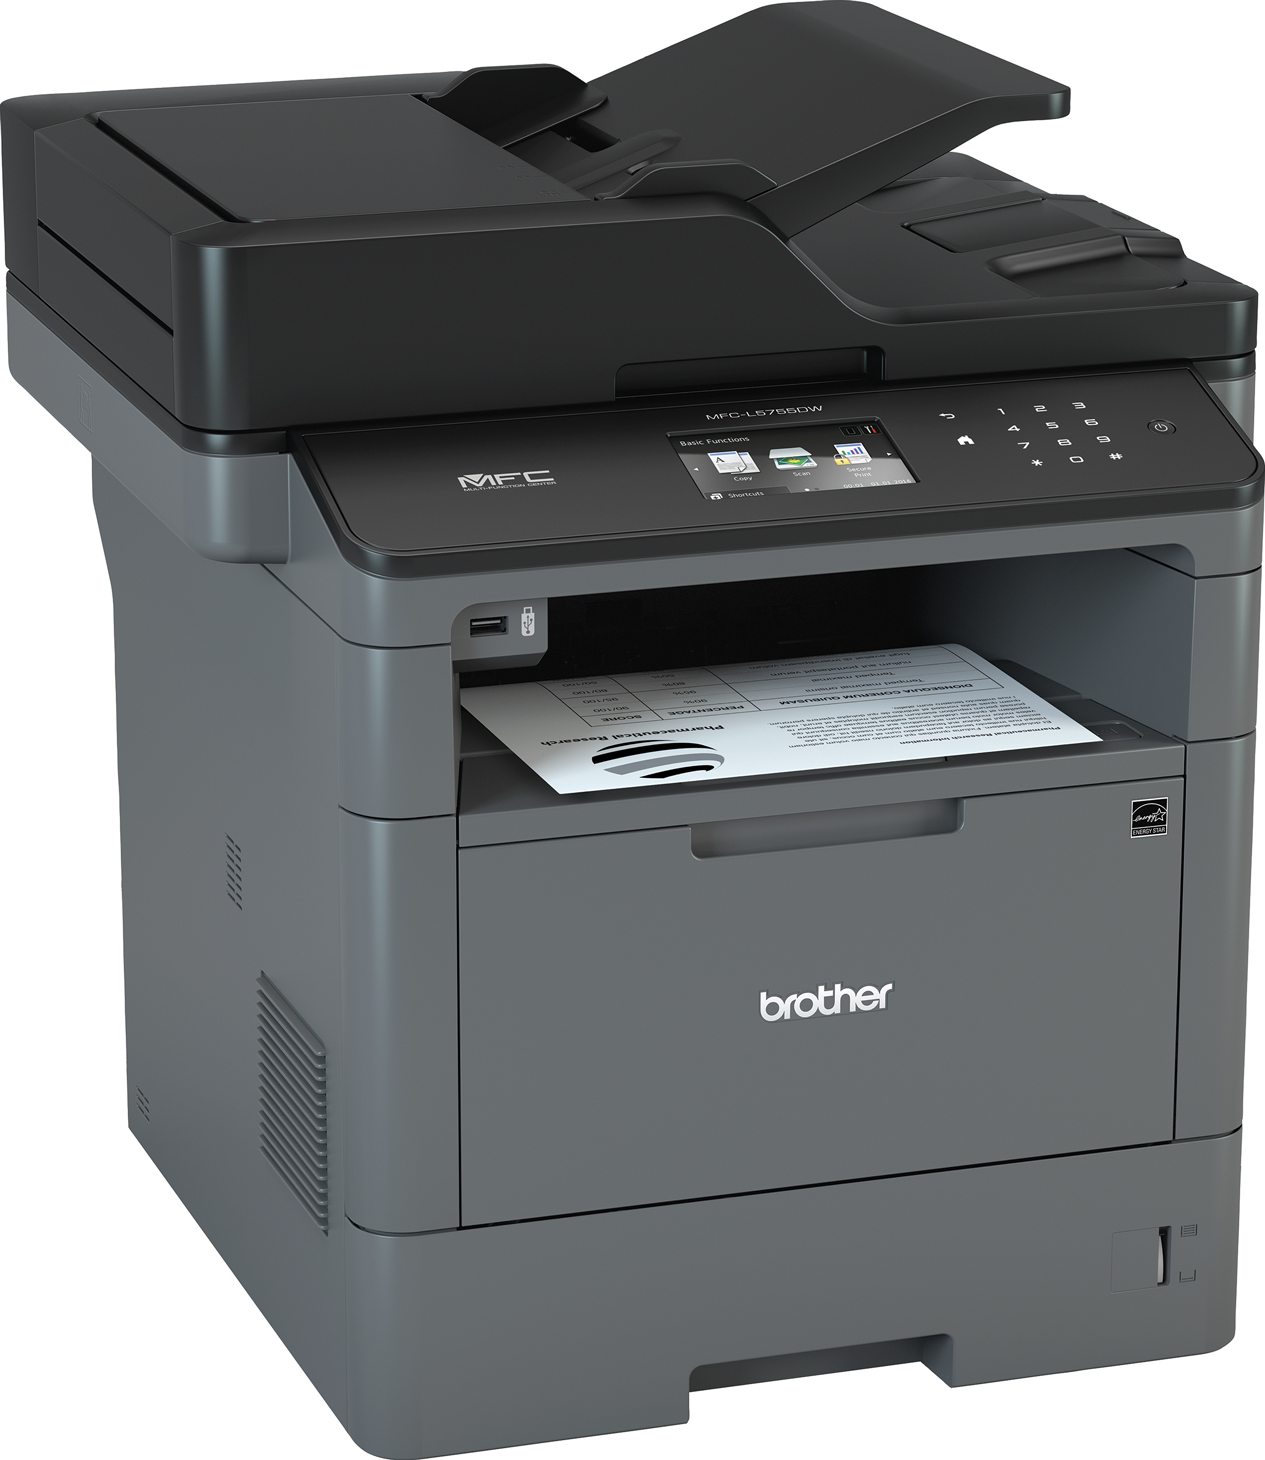 Brother MFCL5755DW Wireless Laser Multifunction Printer